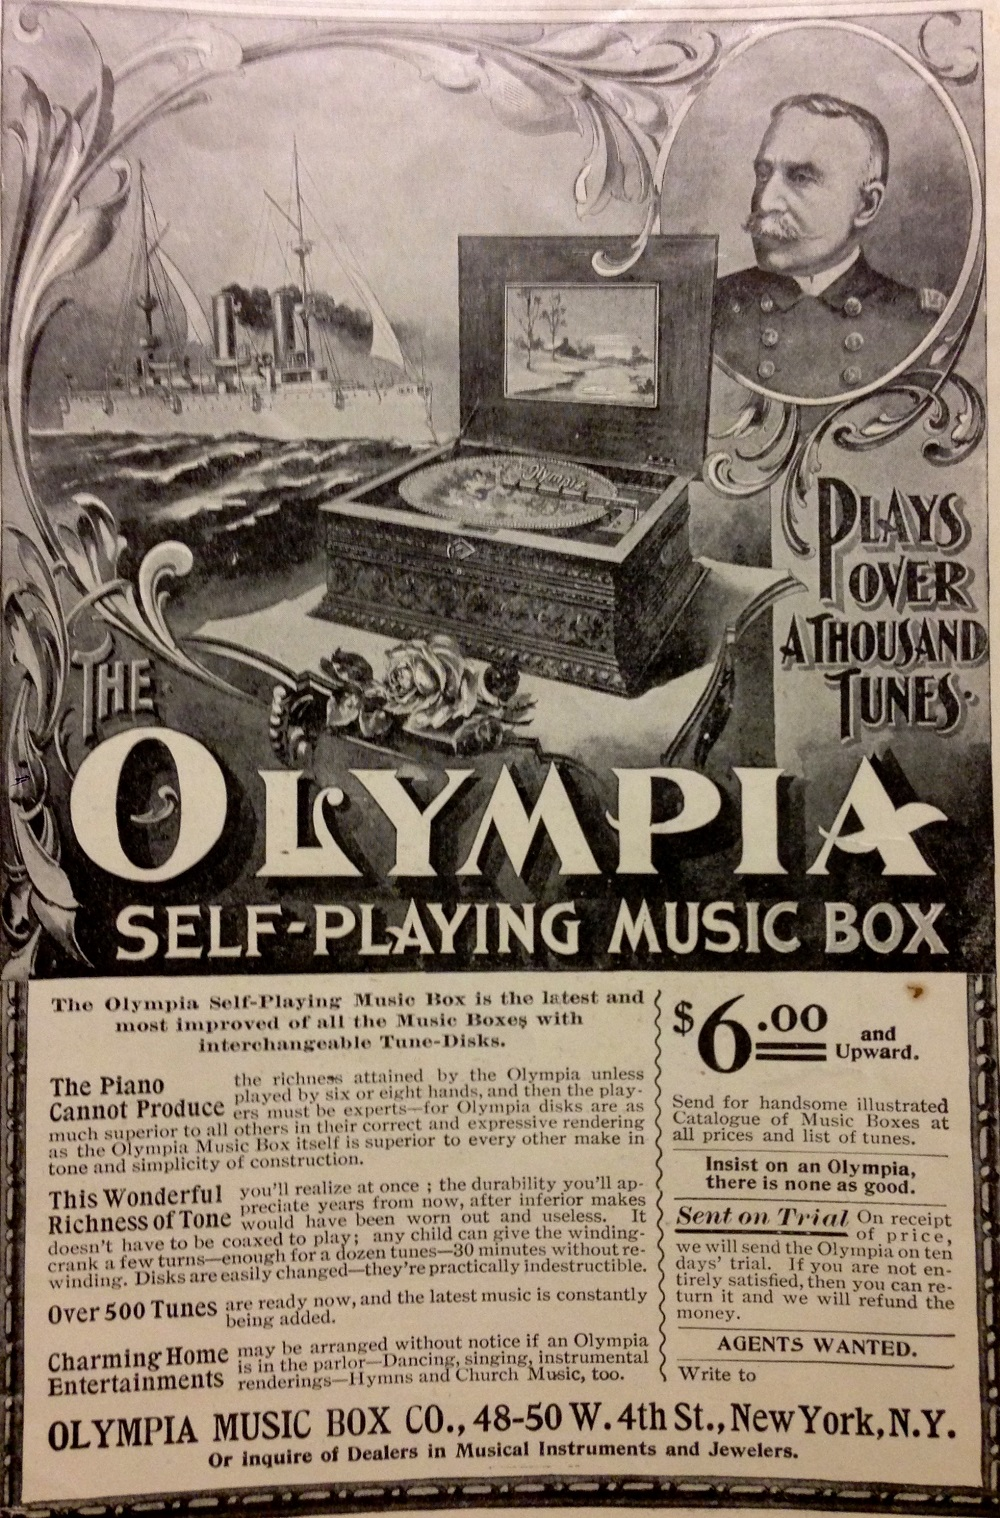 Music box advertisment using OLYMPIA and Dewey images